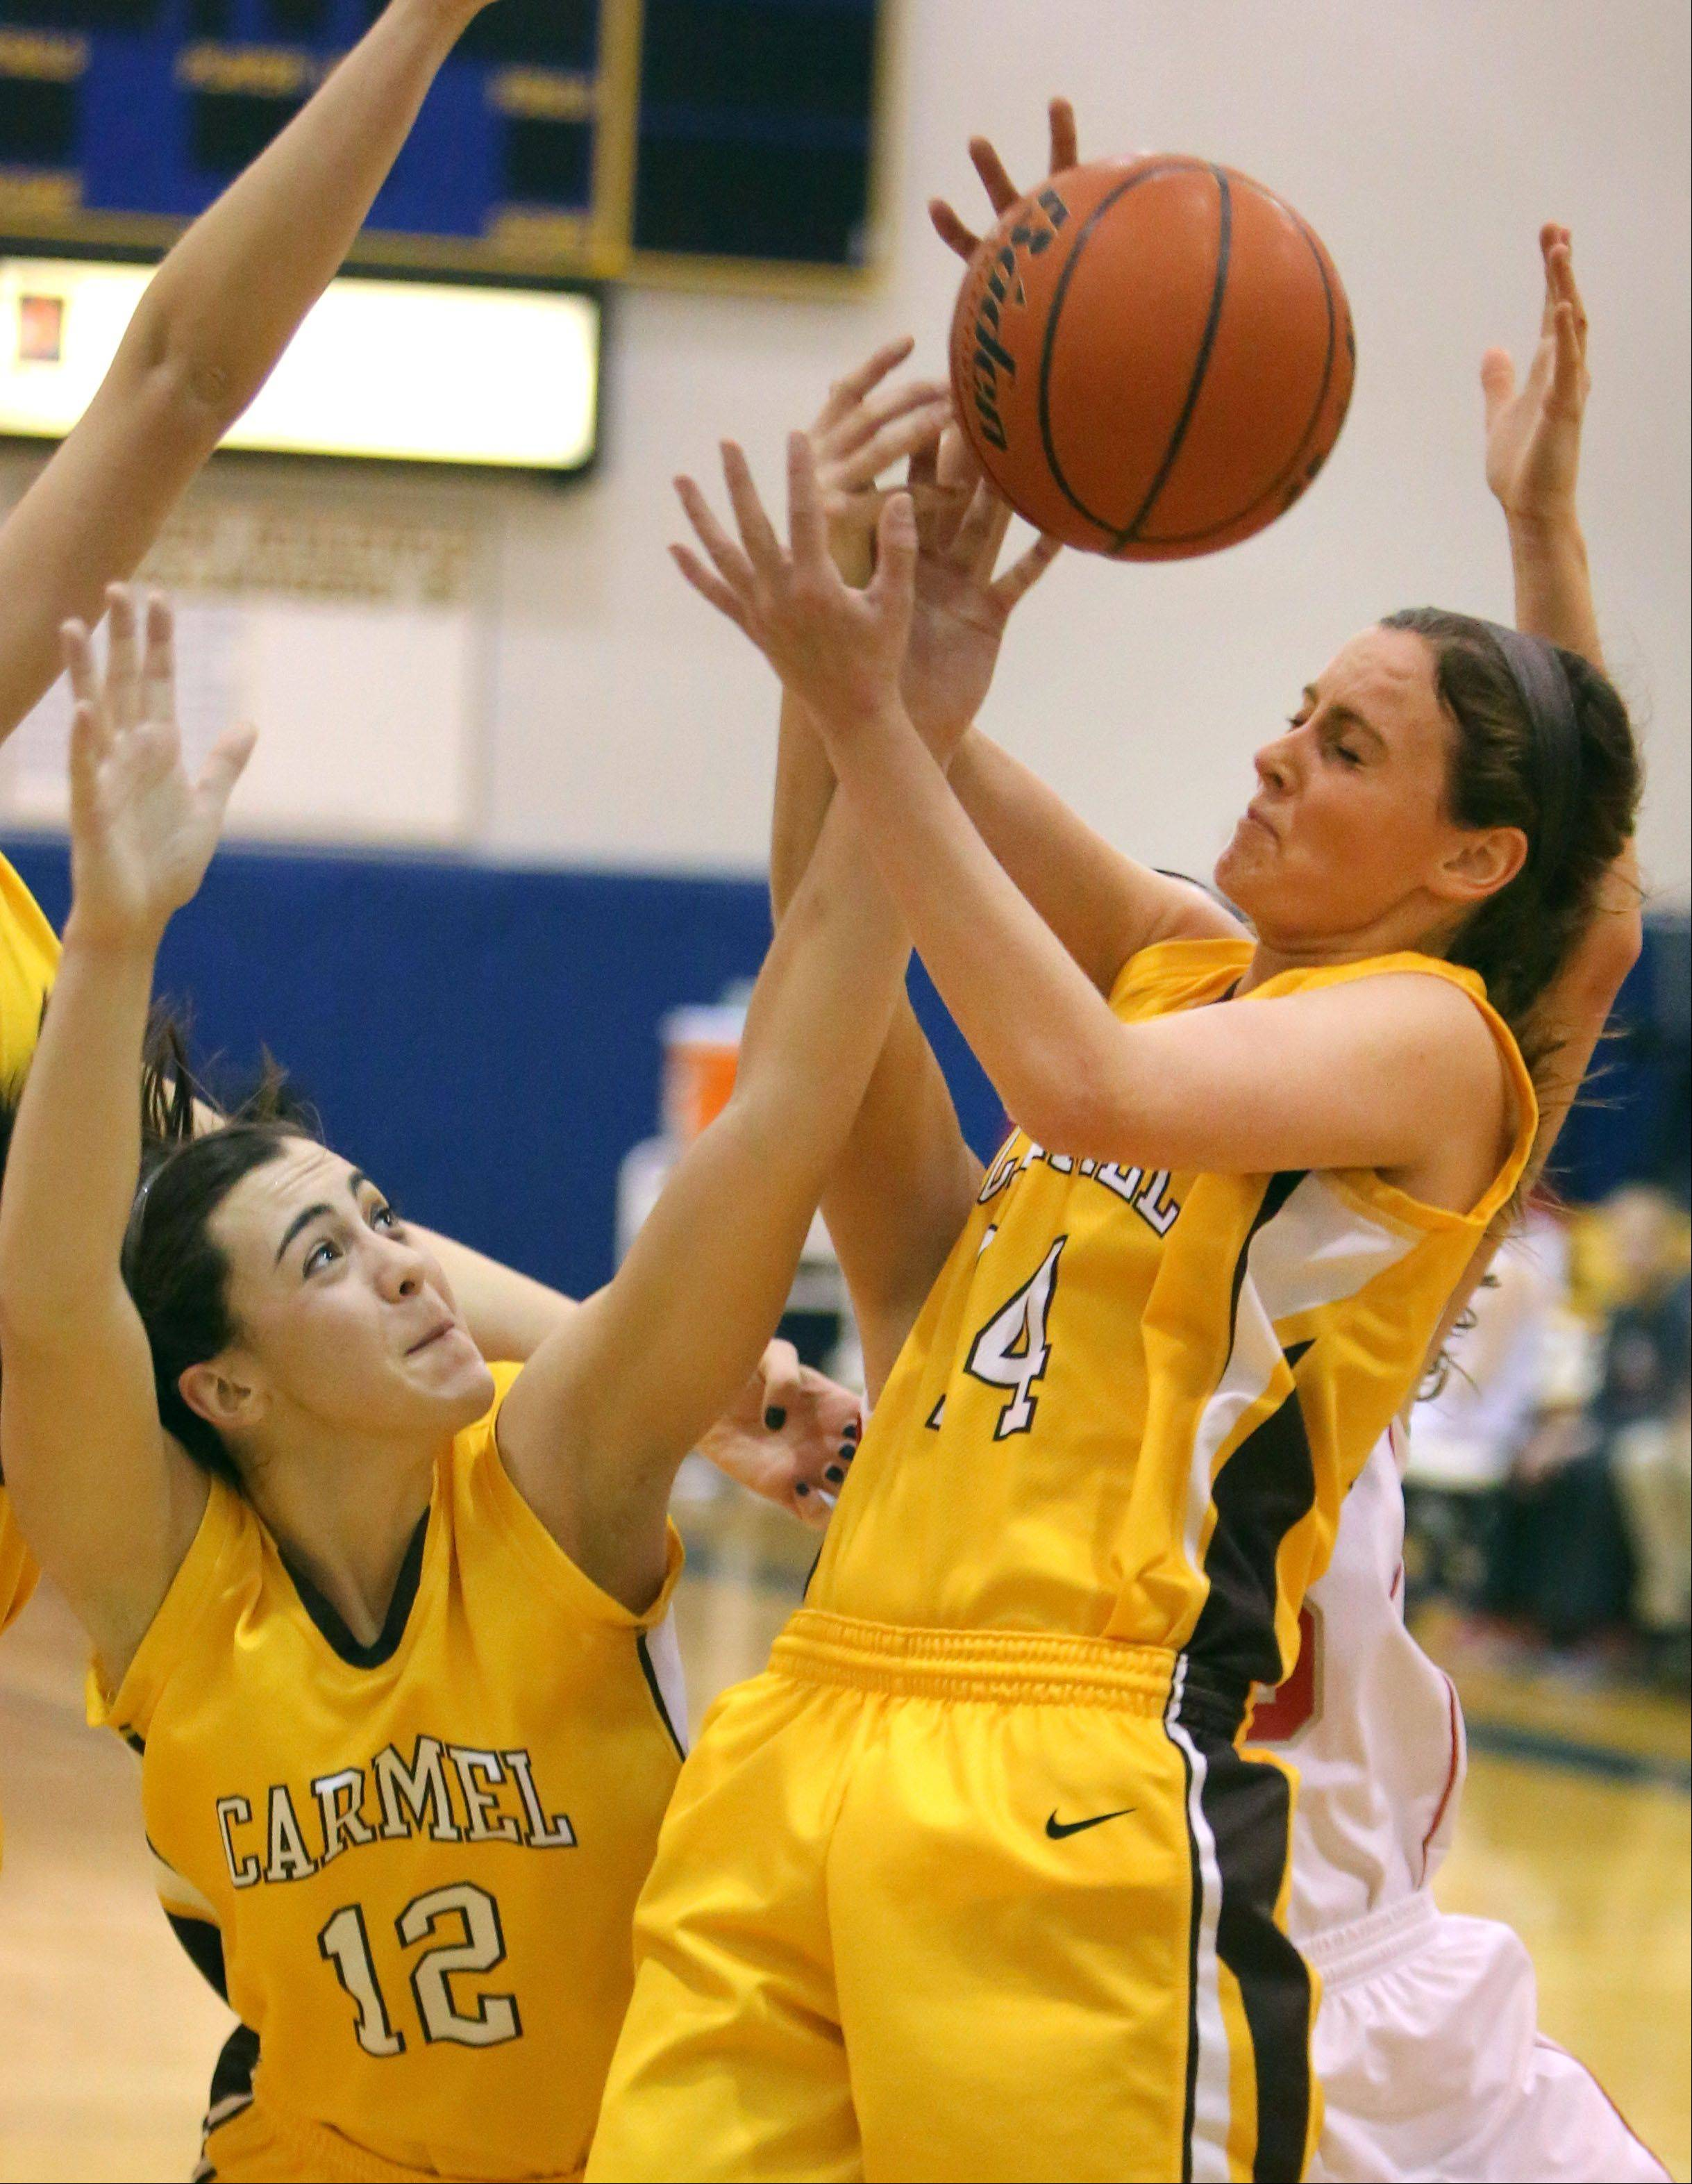 Carmel's Kathleen Felicelli, left, and Casidy Kloss battle for a rebound during Friday's game at Warren.